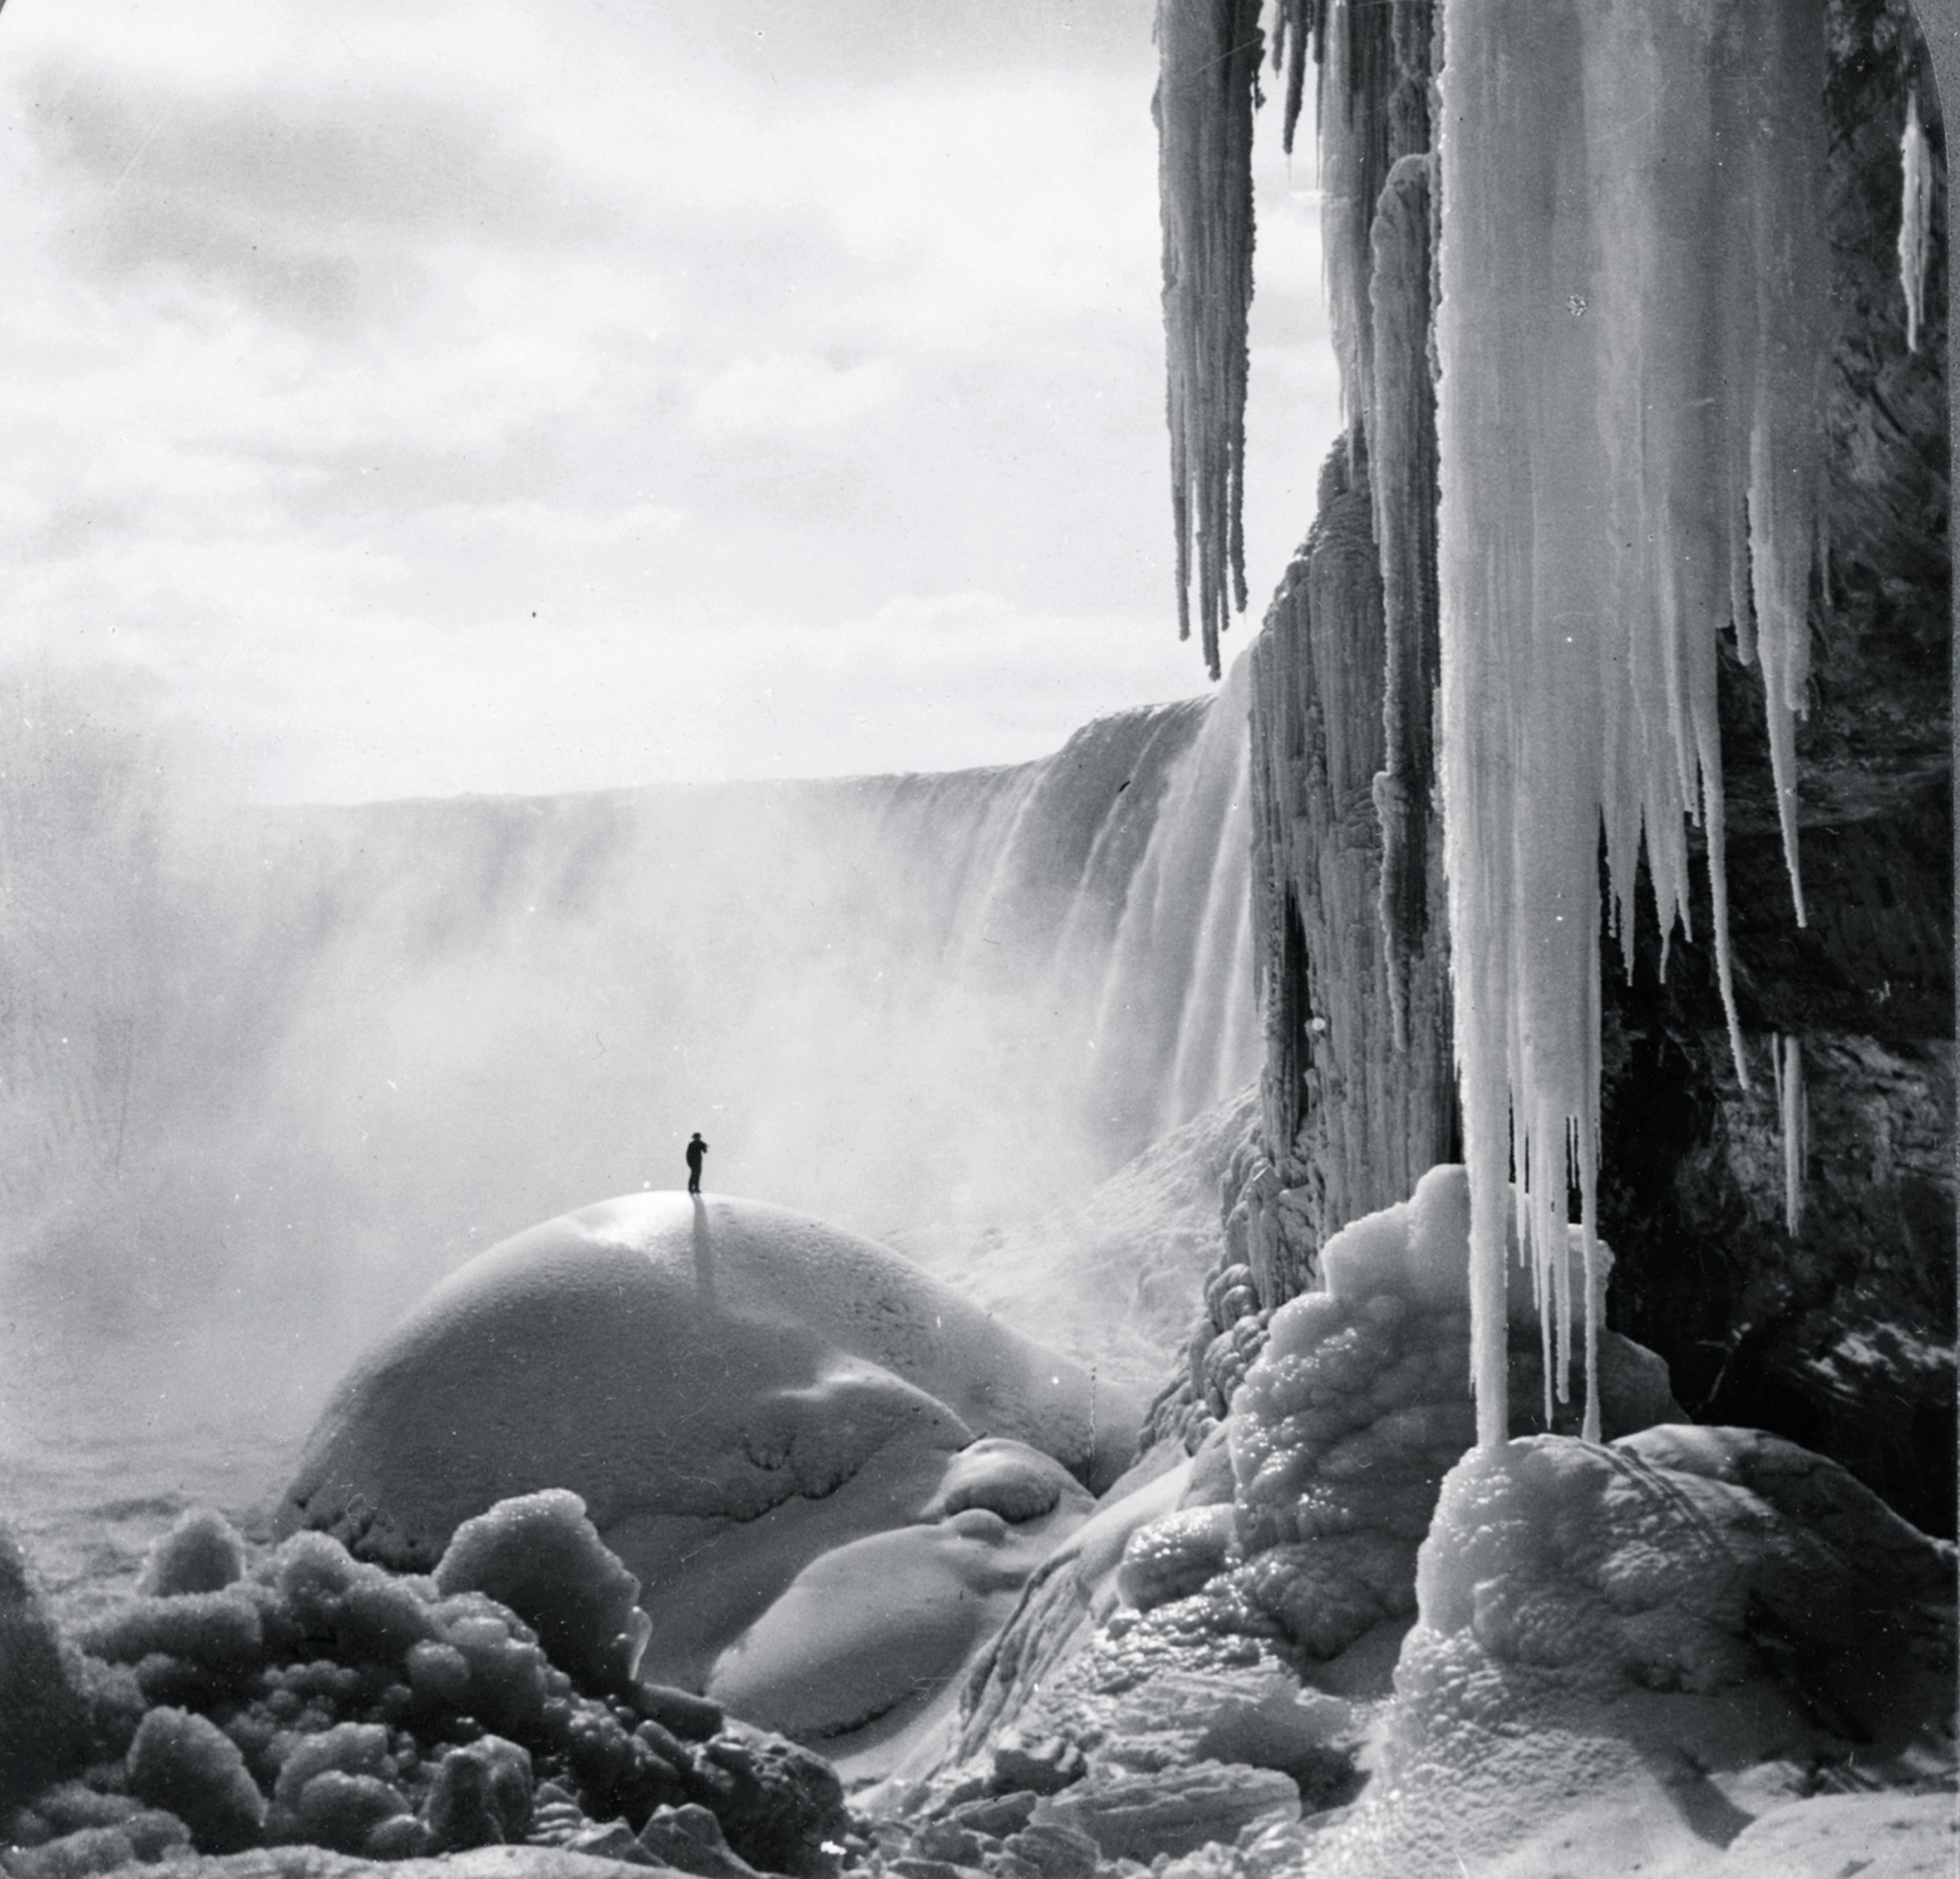 A lone wanderer stands at the foot of the partially frozen Niagara Falls © Getty